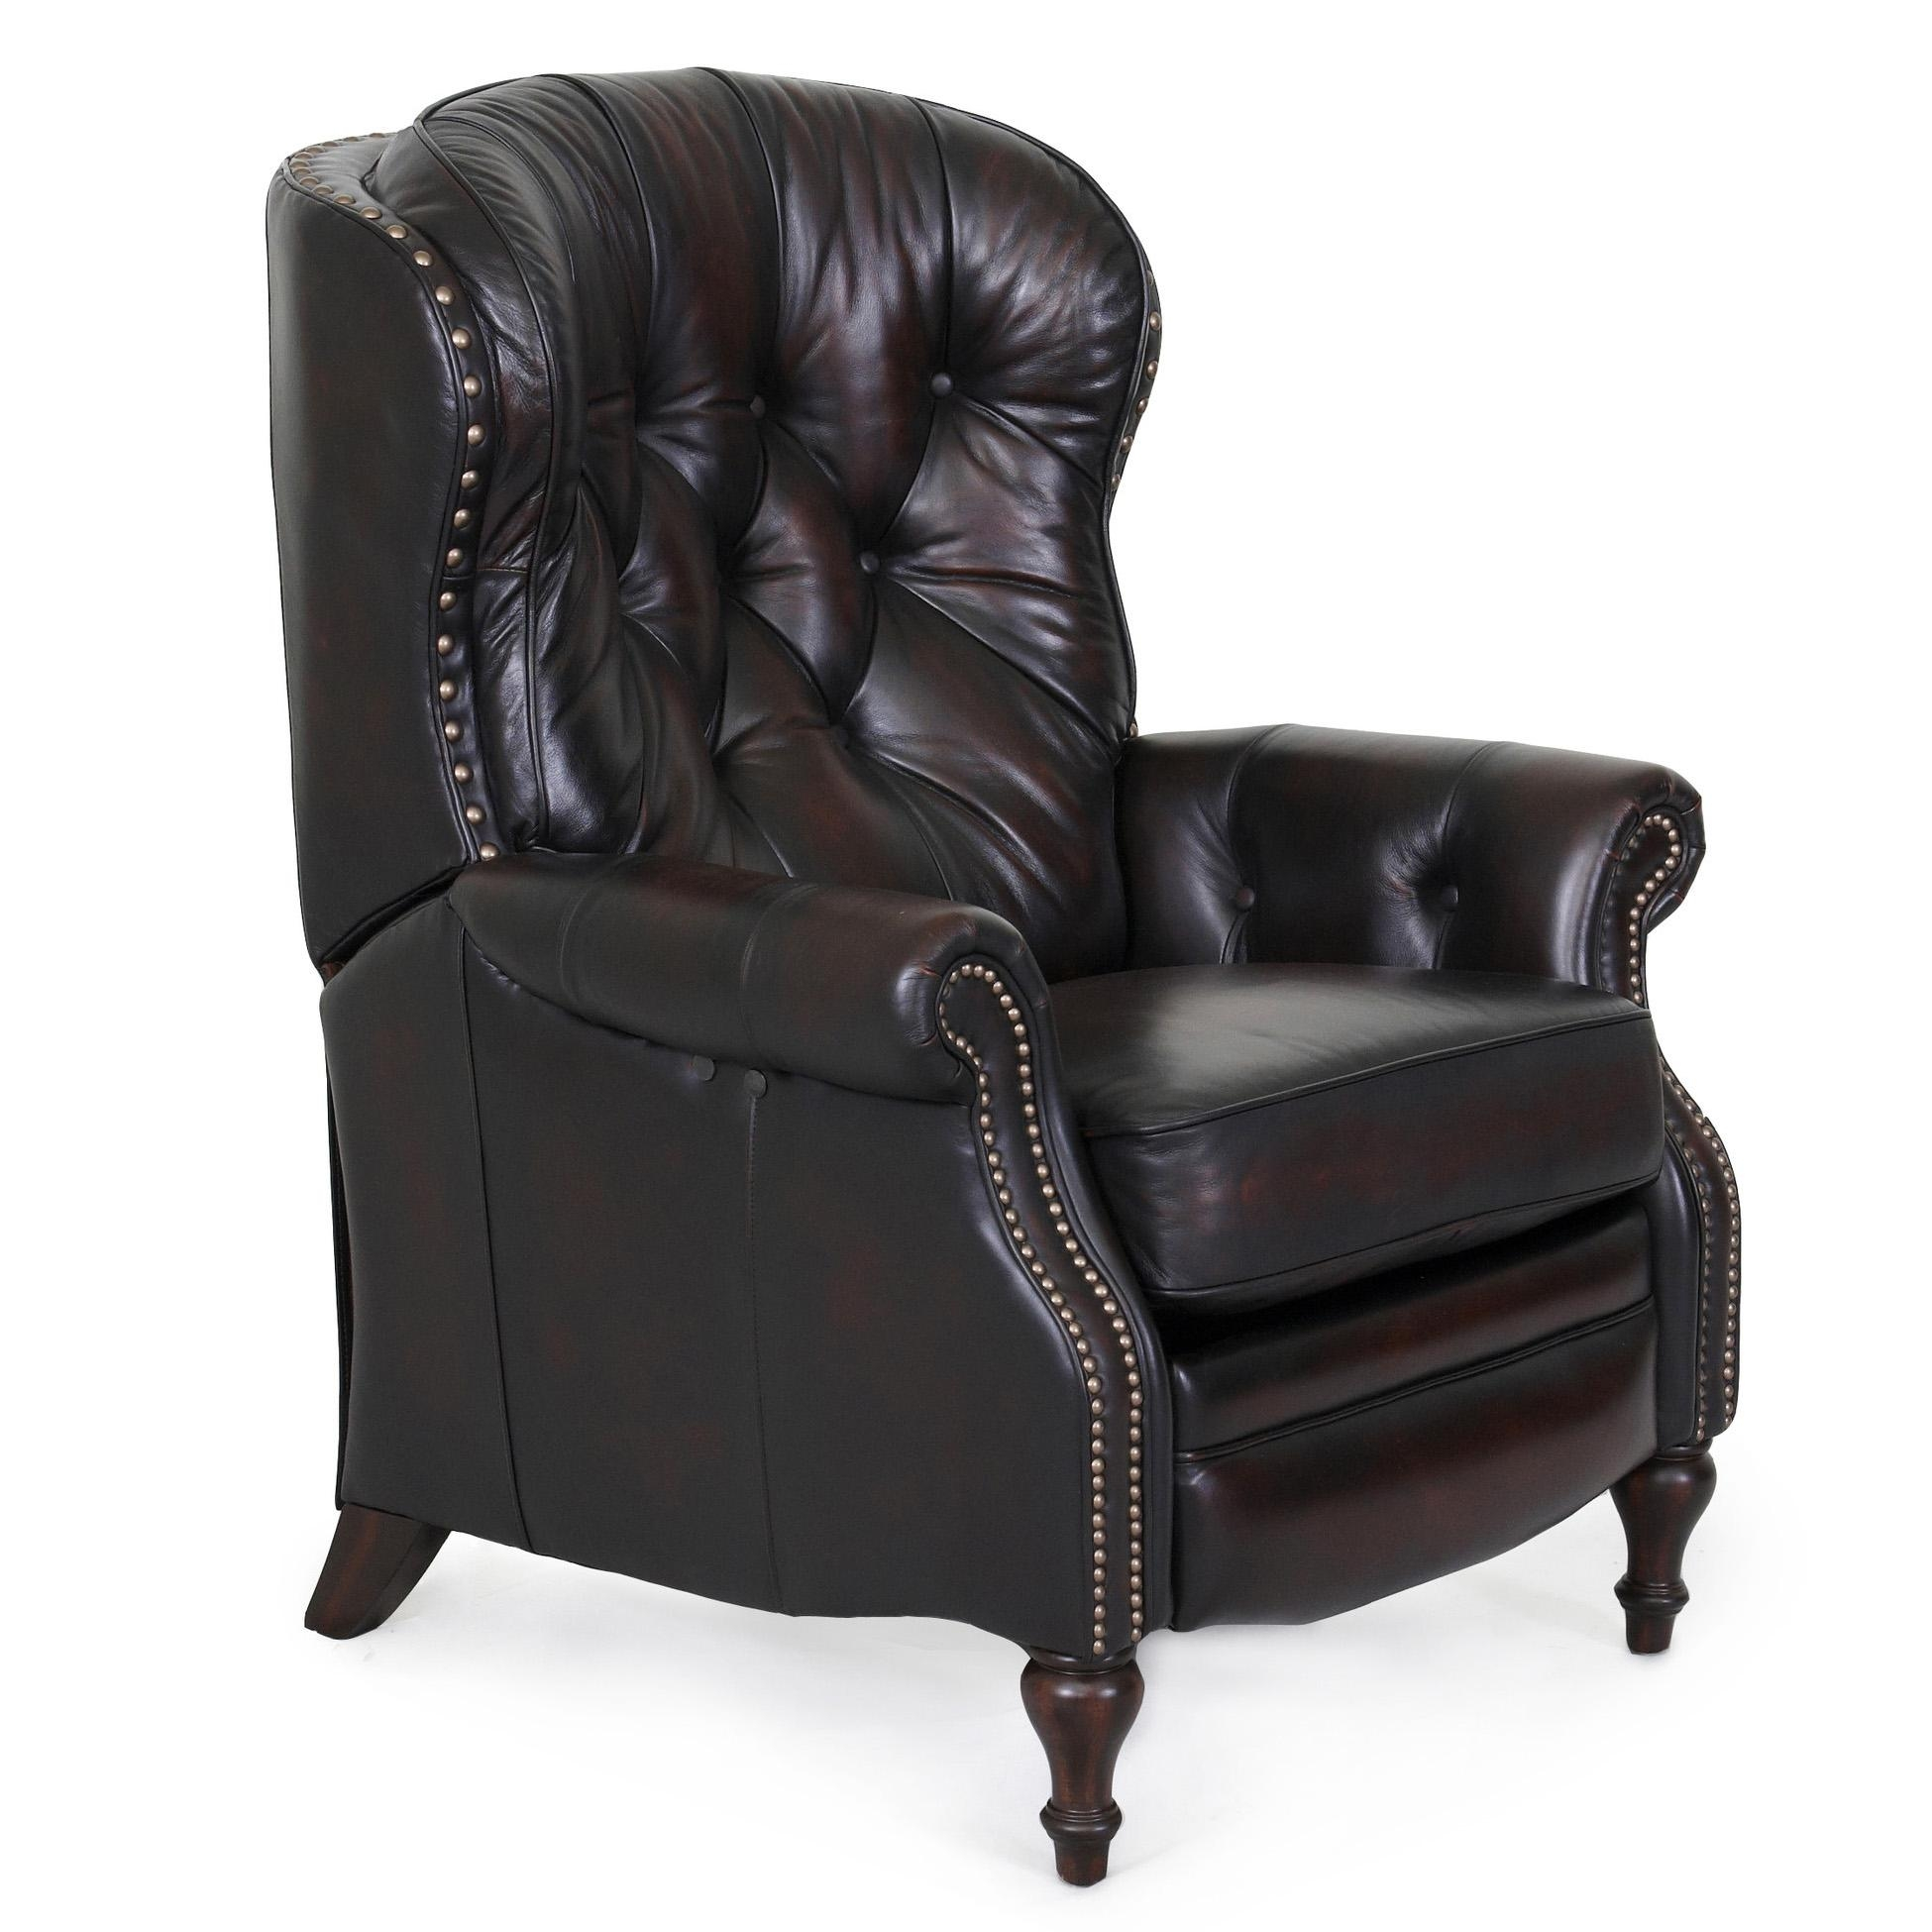 Barcalounger Kendall Ii Recliner Chair – Leather Recliner Chair With Regard To Barcalounger Sofas (View 18 of 20)